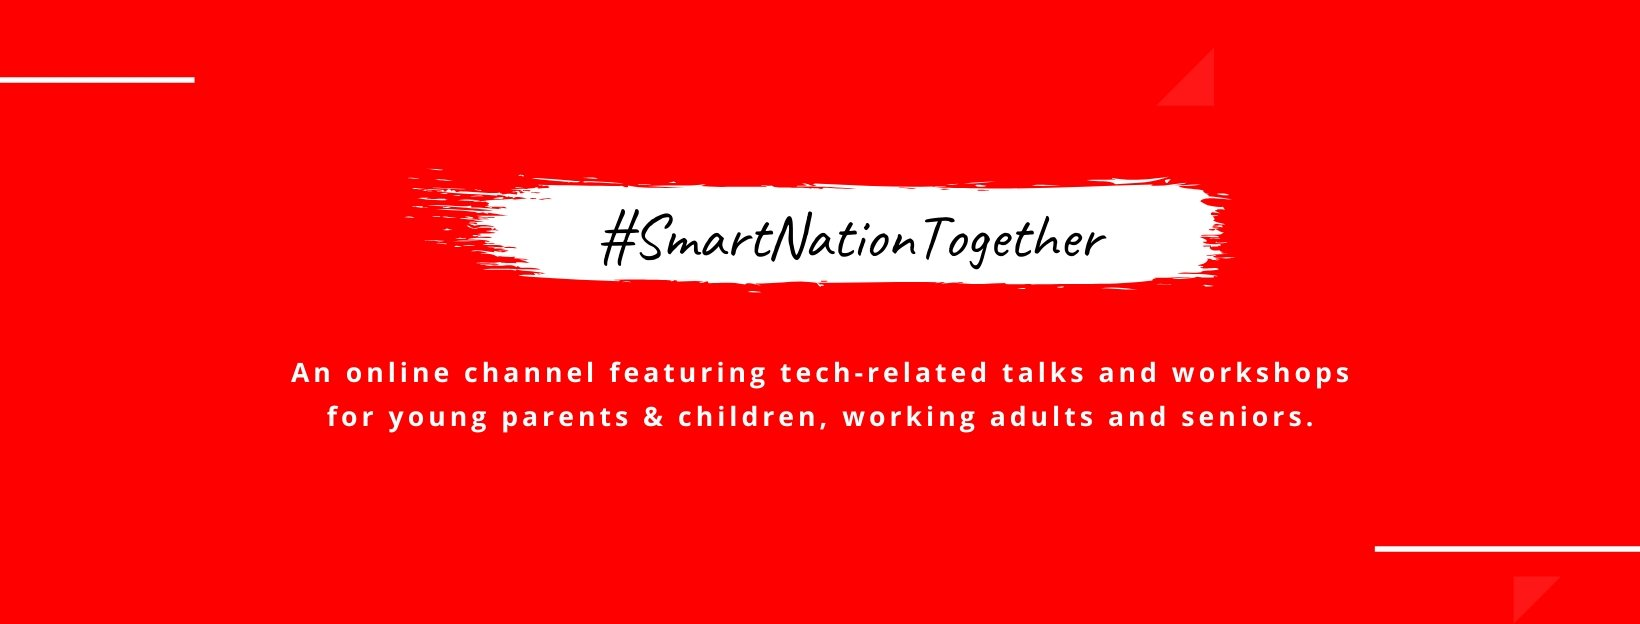 #SmartNationTogether by Smart Nation Singapore | For Parents and Children